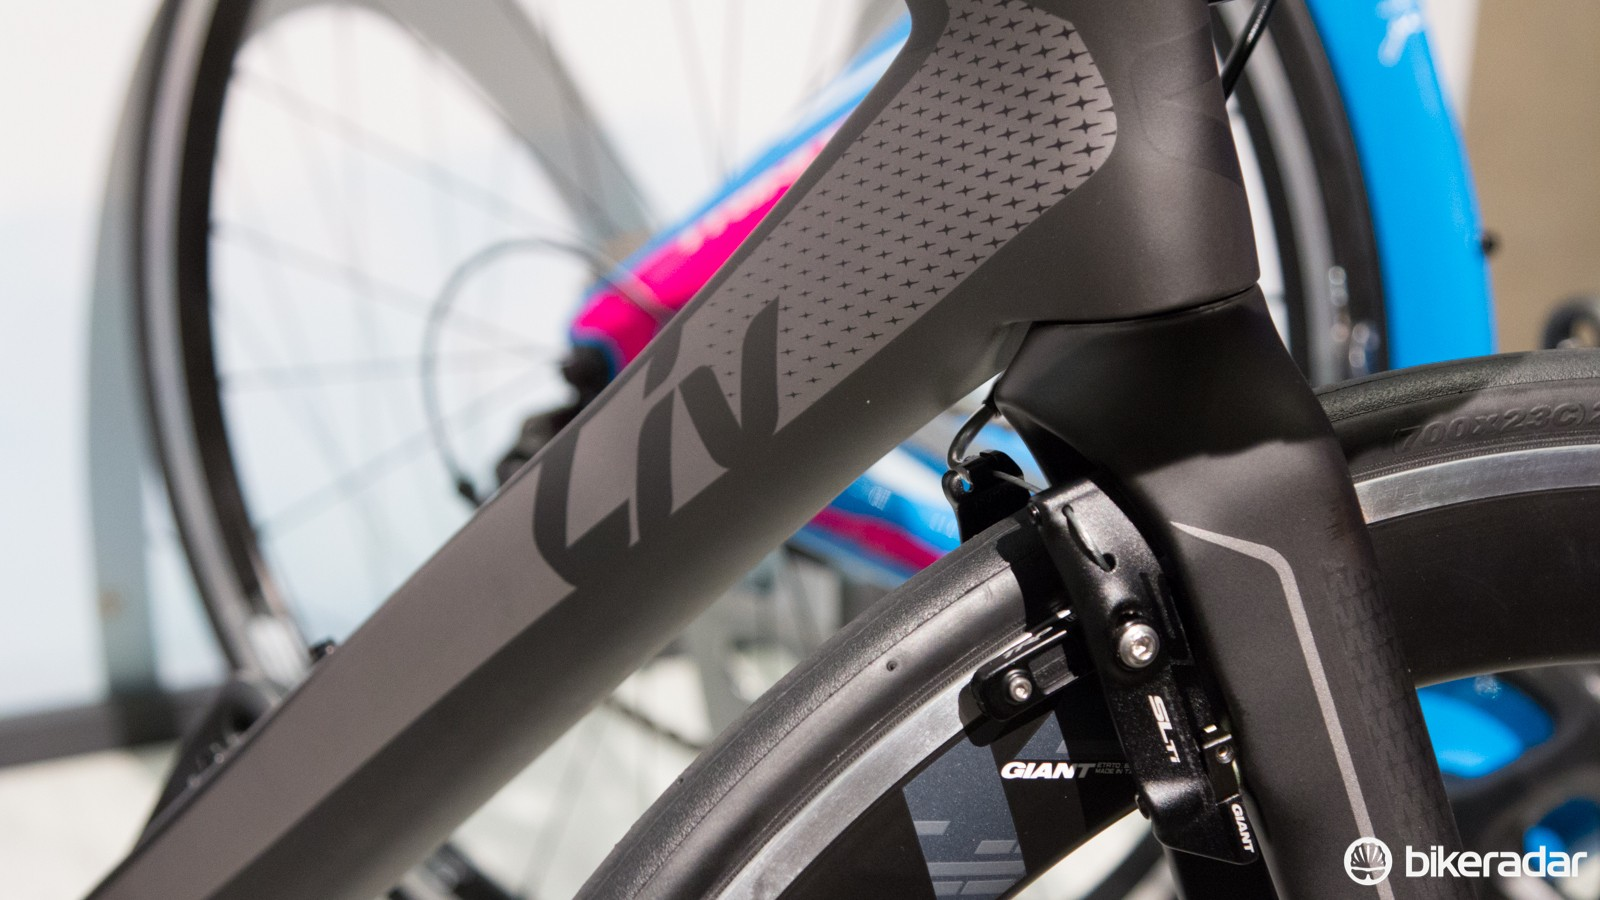 The biggest change to the 2015 Envie lineup is a new brake. Previously the Envie brakes were known to be fiddly and underperforming - these new alloy models should fix that